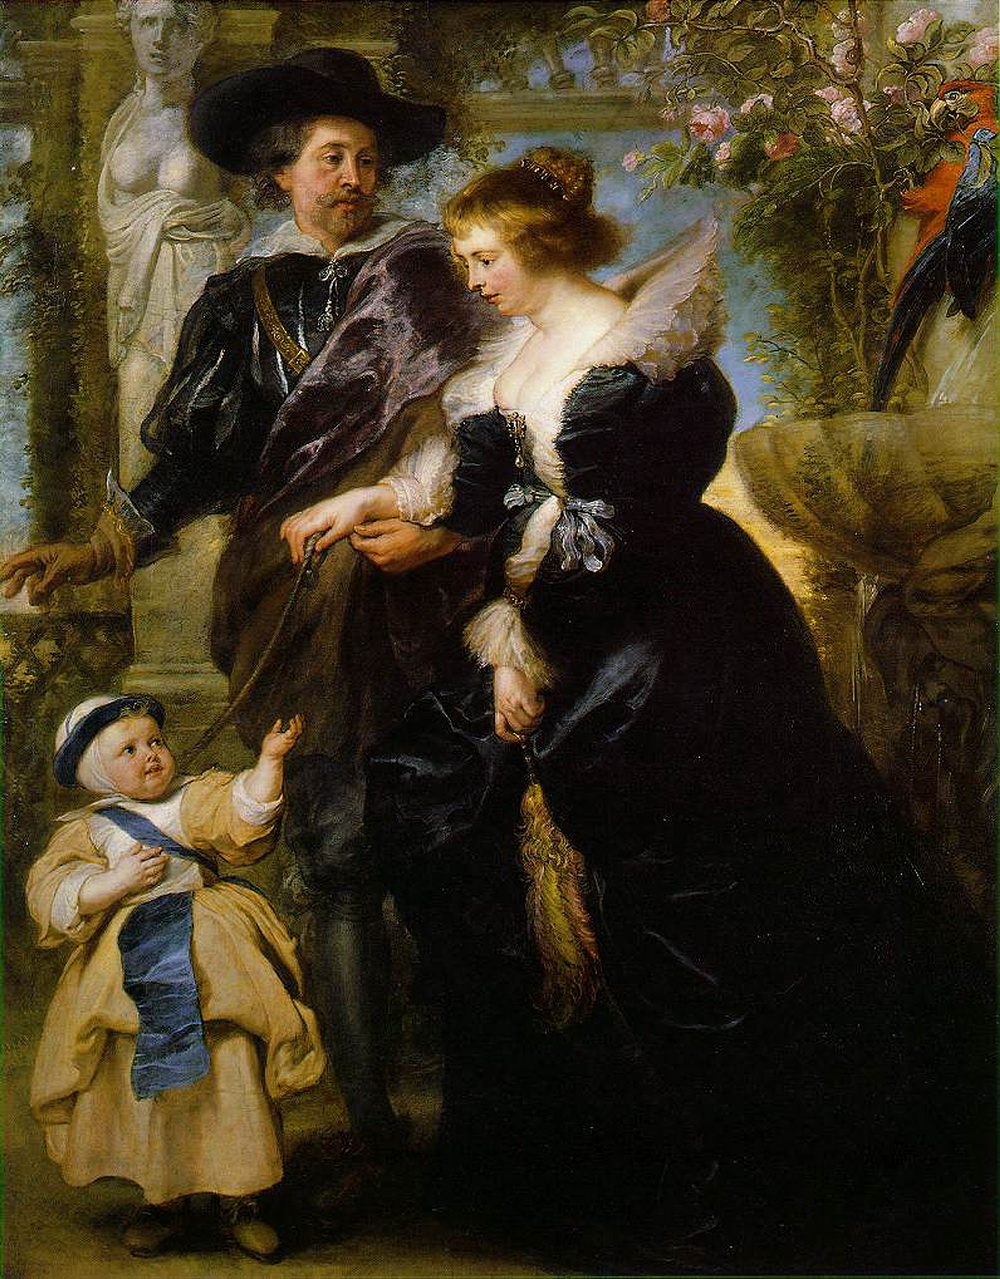 Rubens His Wife Helena Fourment 16141673 and Their Son Frans-2